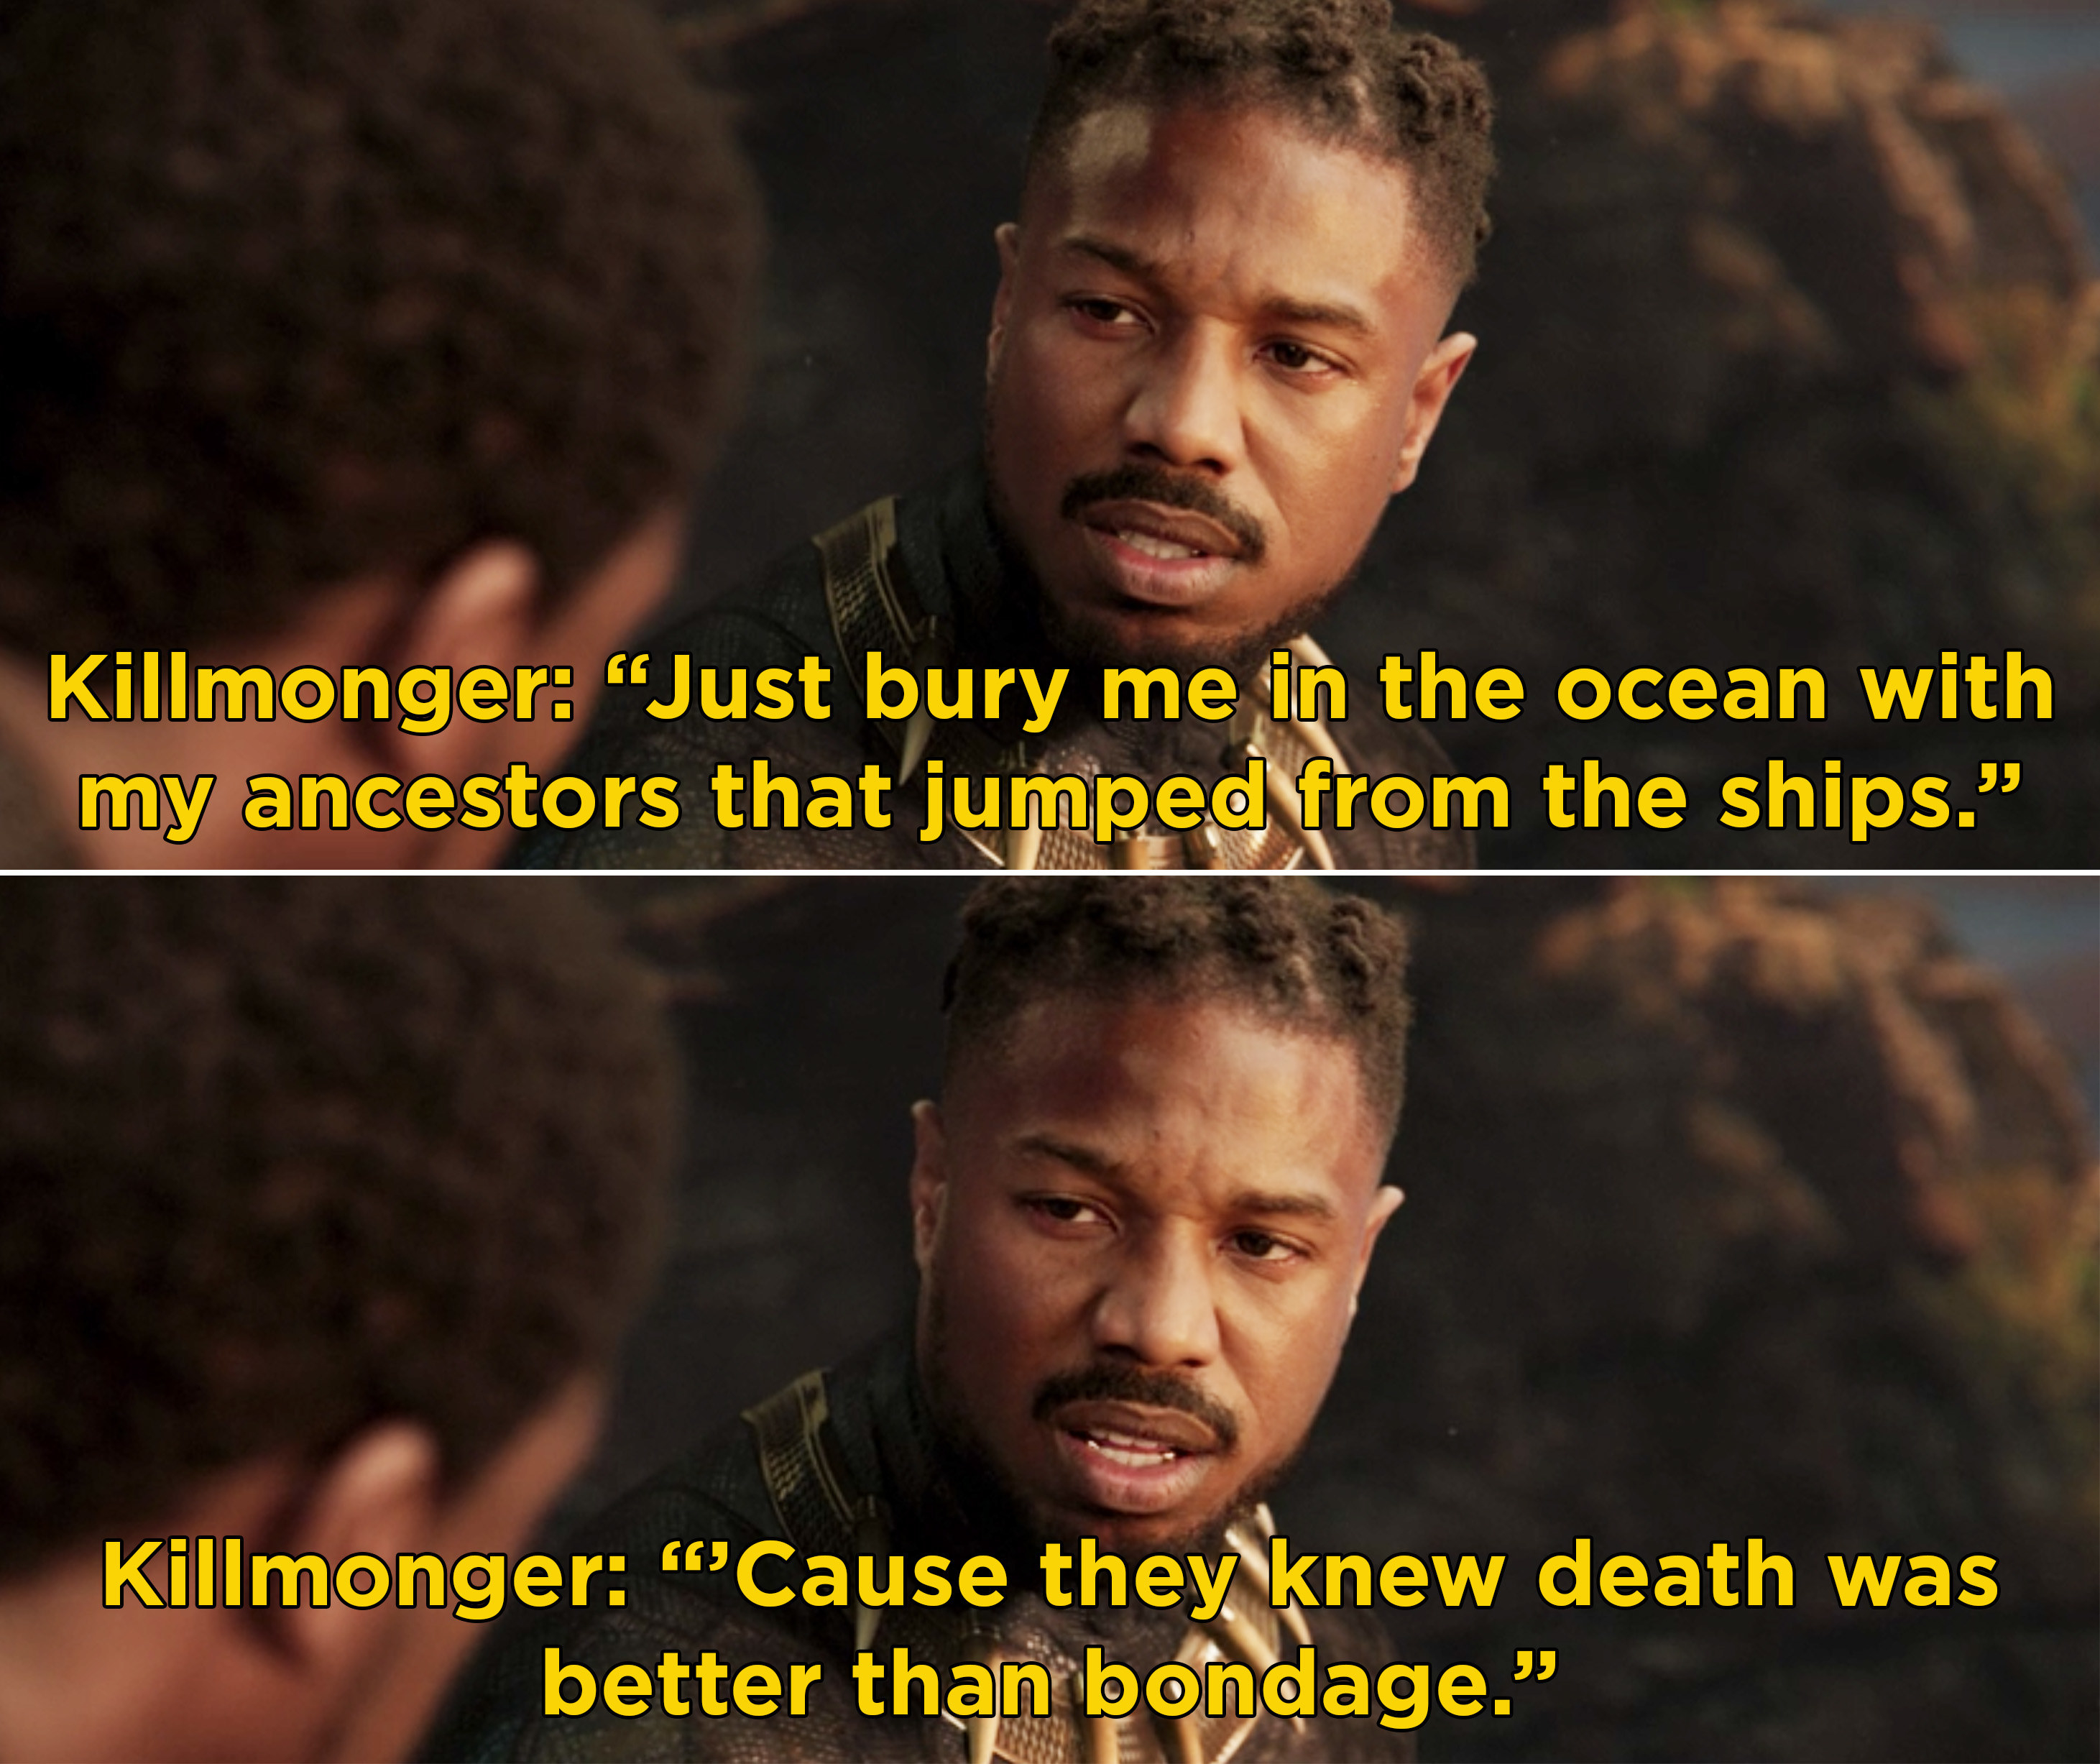 """Killmonger saying, """"Just bury me in the ocean with my ancestors that jumped from the ships. 'Cause they knew death was better than bondage"""""""